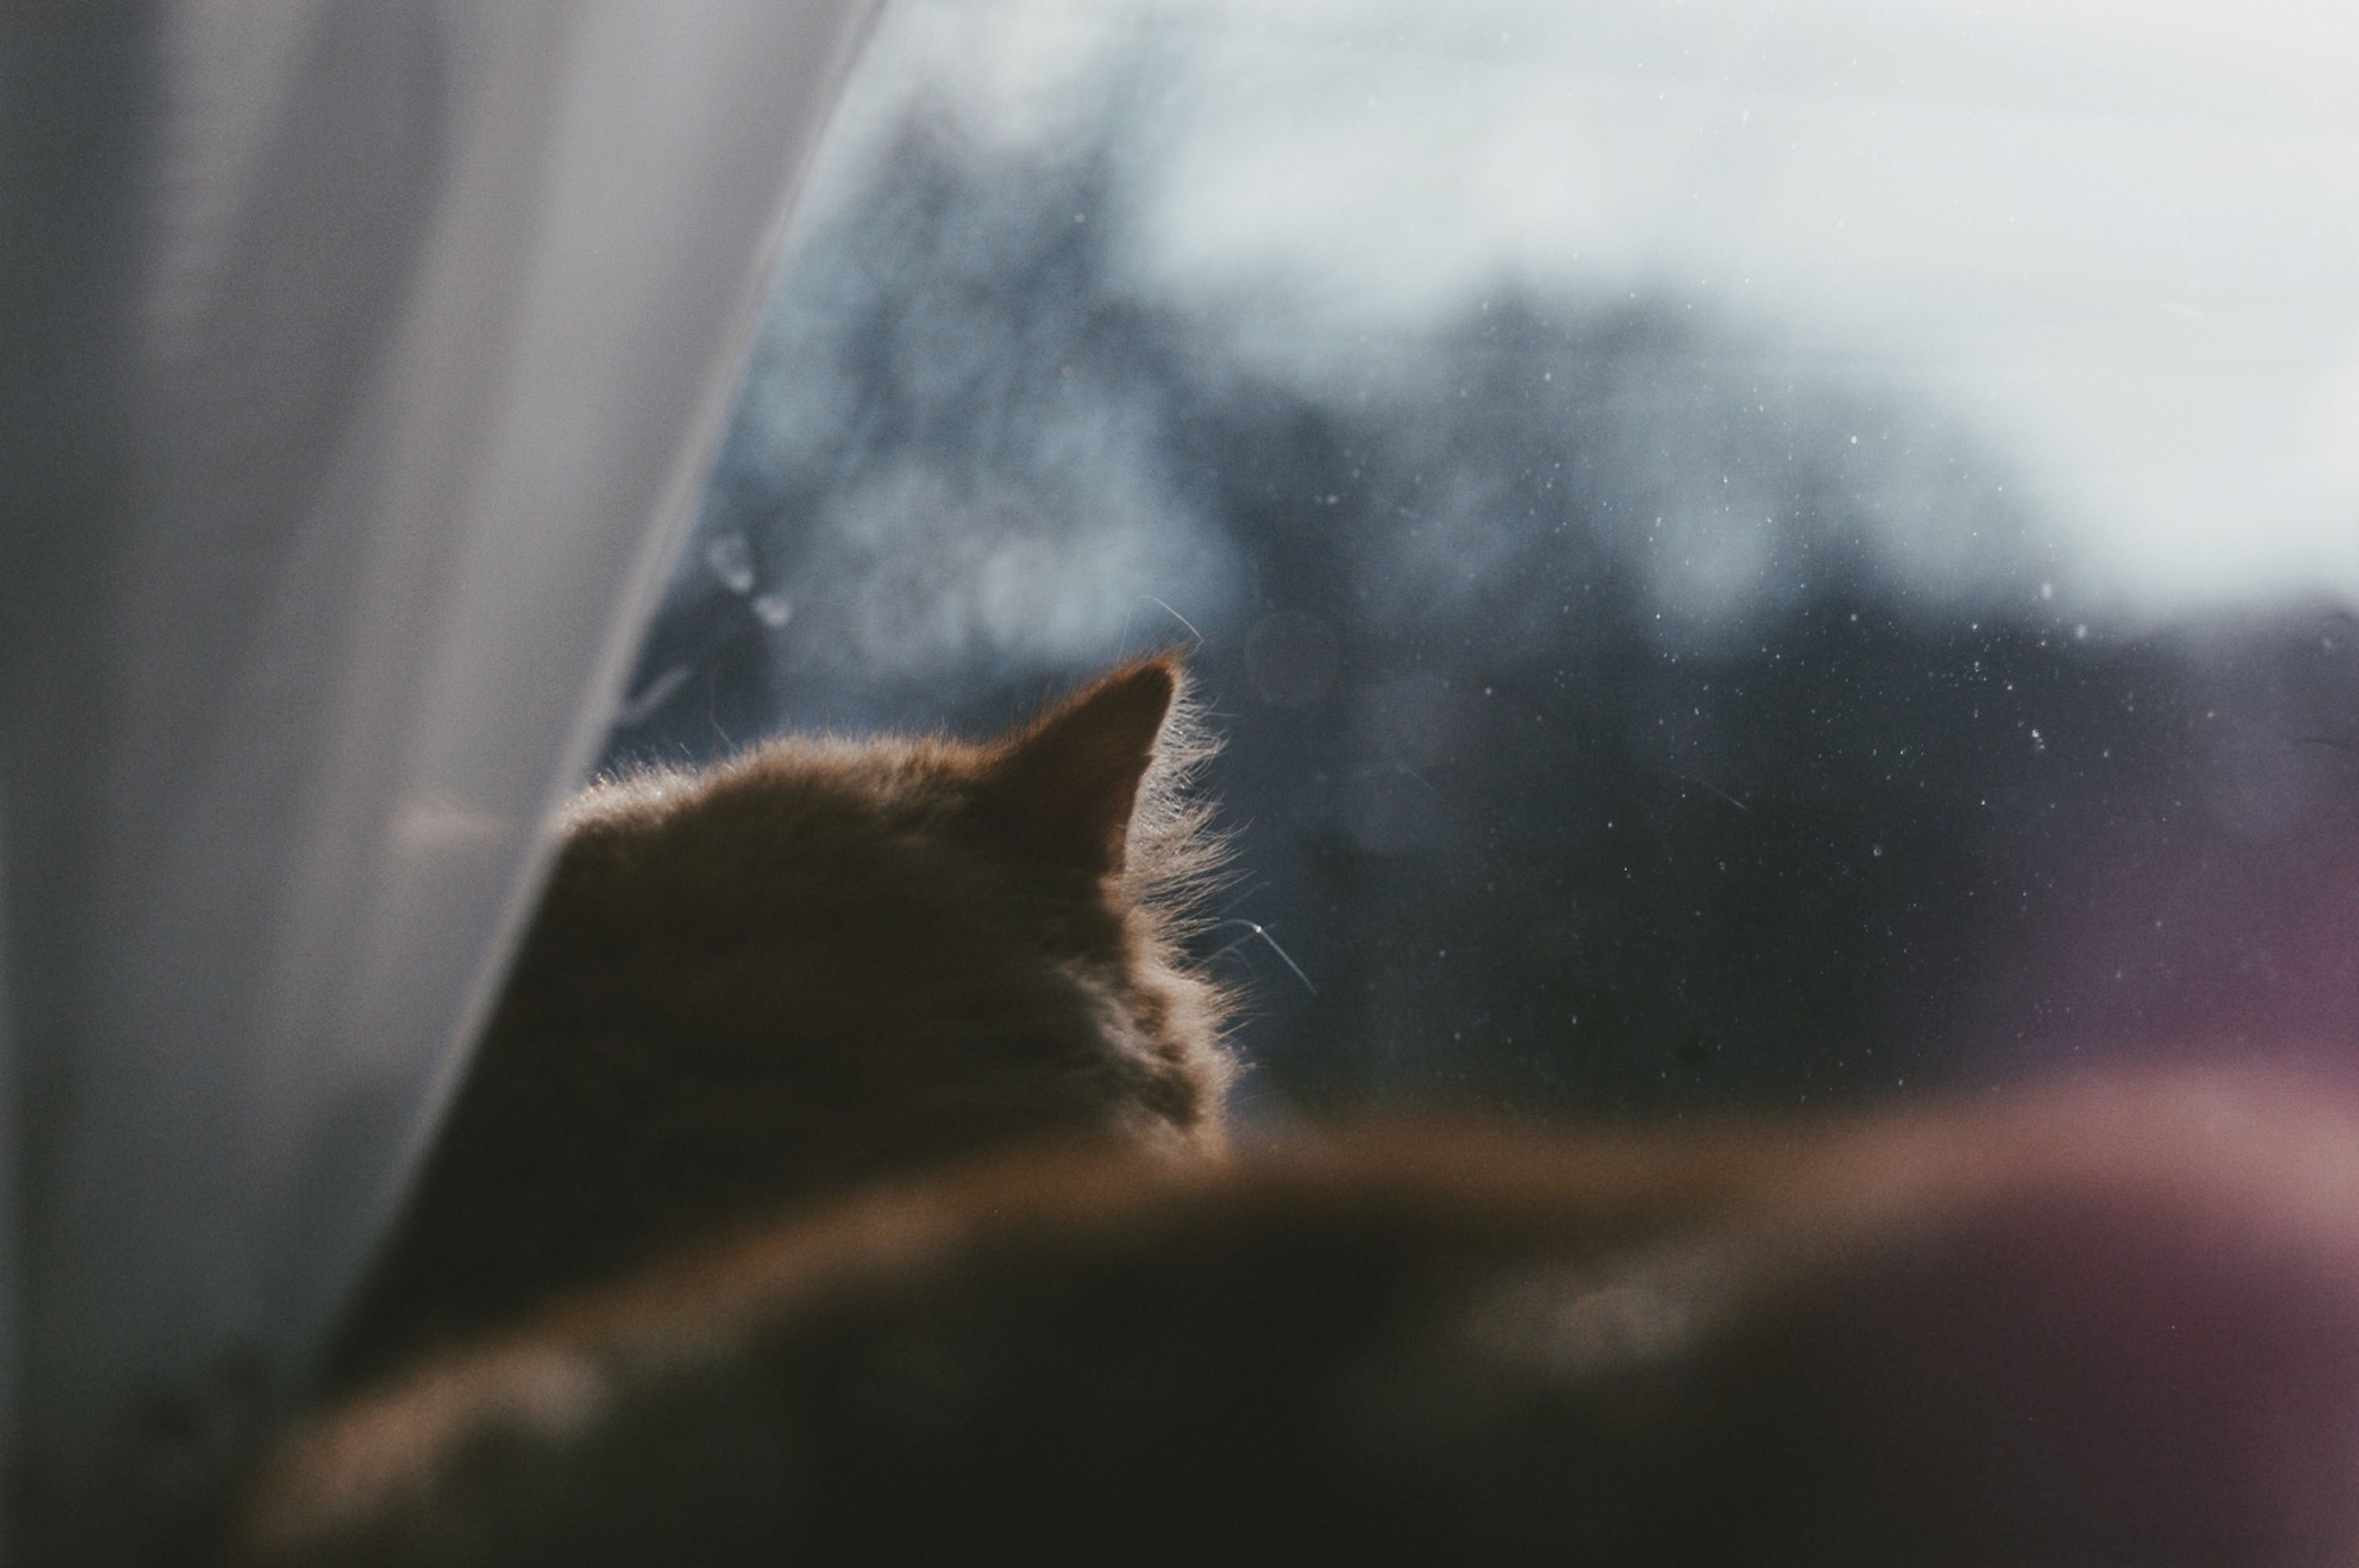 indoors, window, one animal, animal themes, selective focus, close-up, transparent, glass - material, wet, focus on foreground, rain, drop, no people, copy space, looking through window, part of, defocused, nature, weather, day